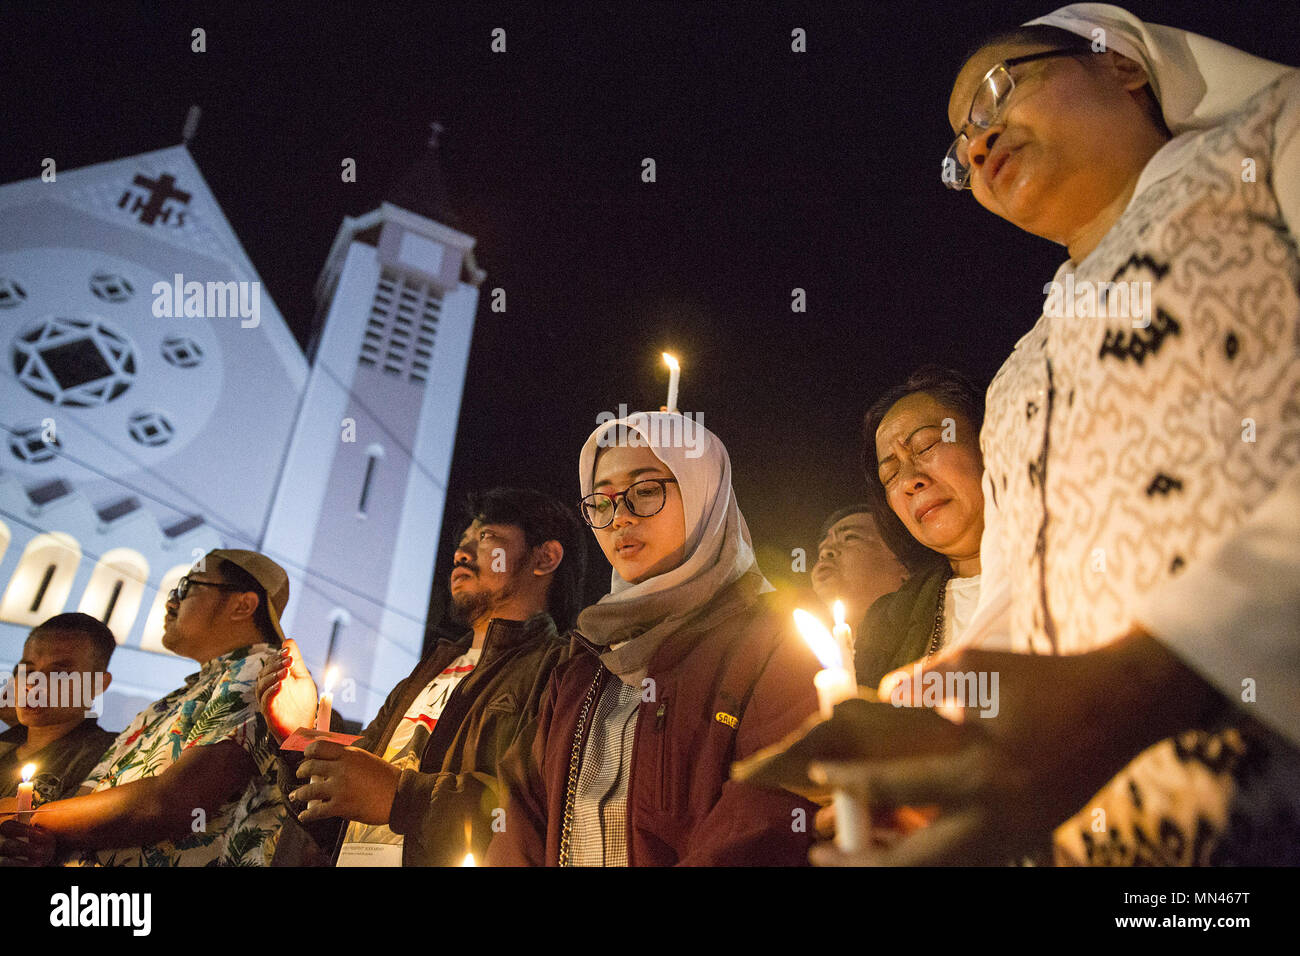 May 10 2018 Malang East Java Indonesia Malang Indonesia May 14 People Hold Candles While Following